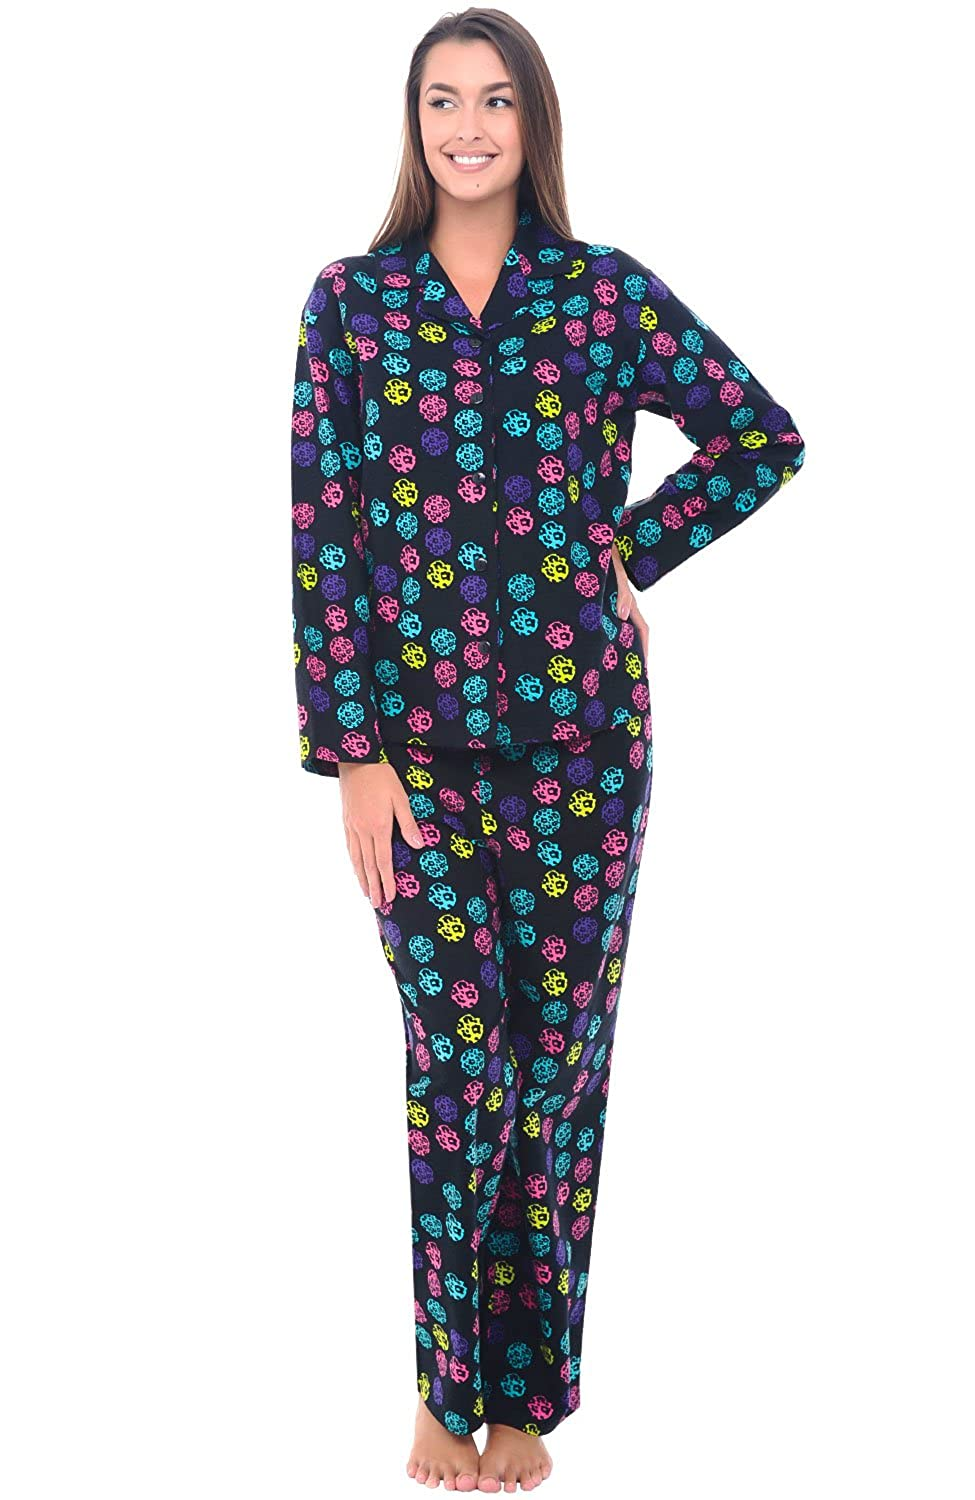 Button-Front Pajamas For Women - Good Gifts For Senior Citizens